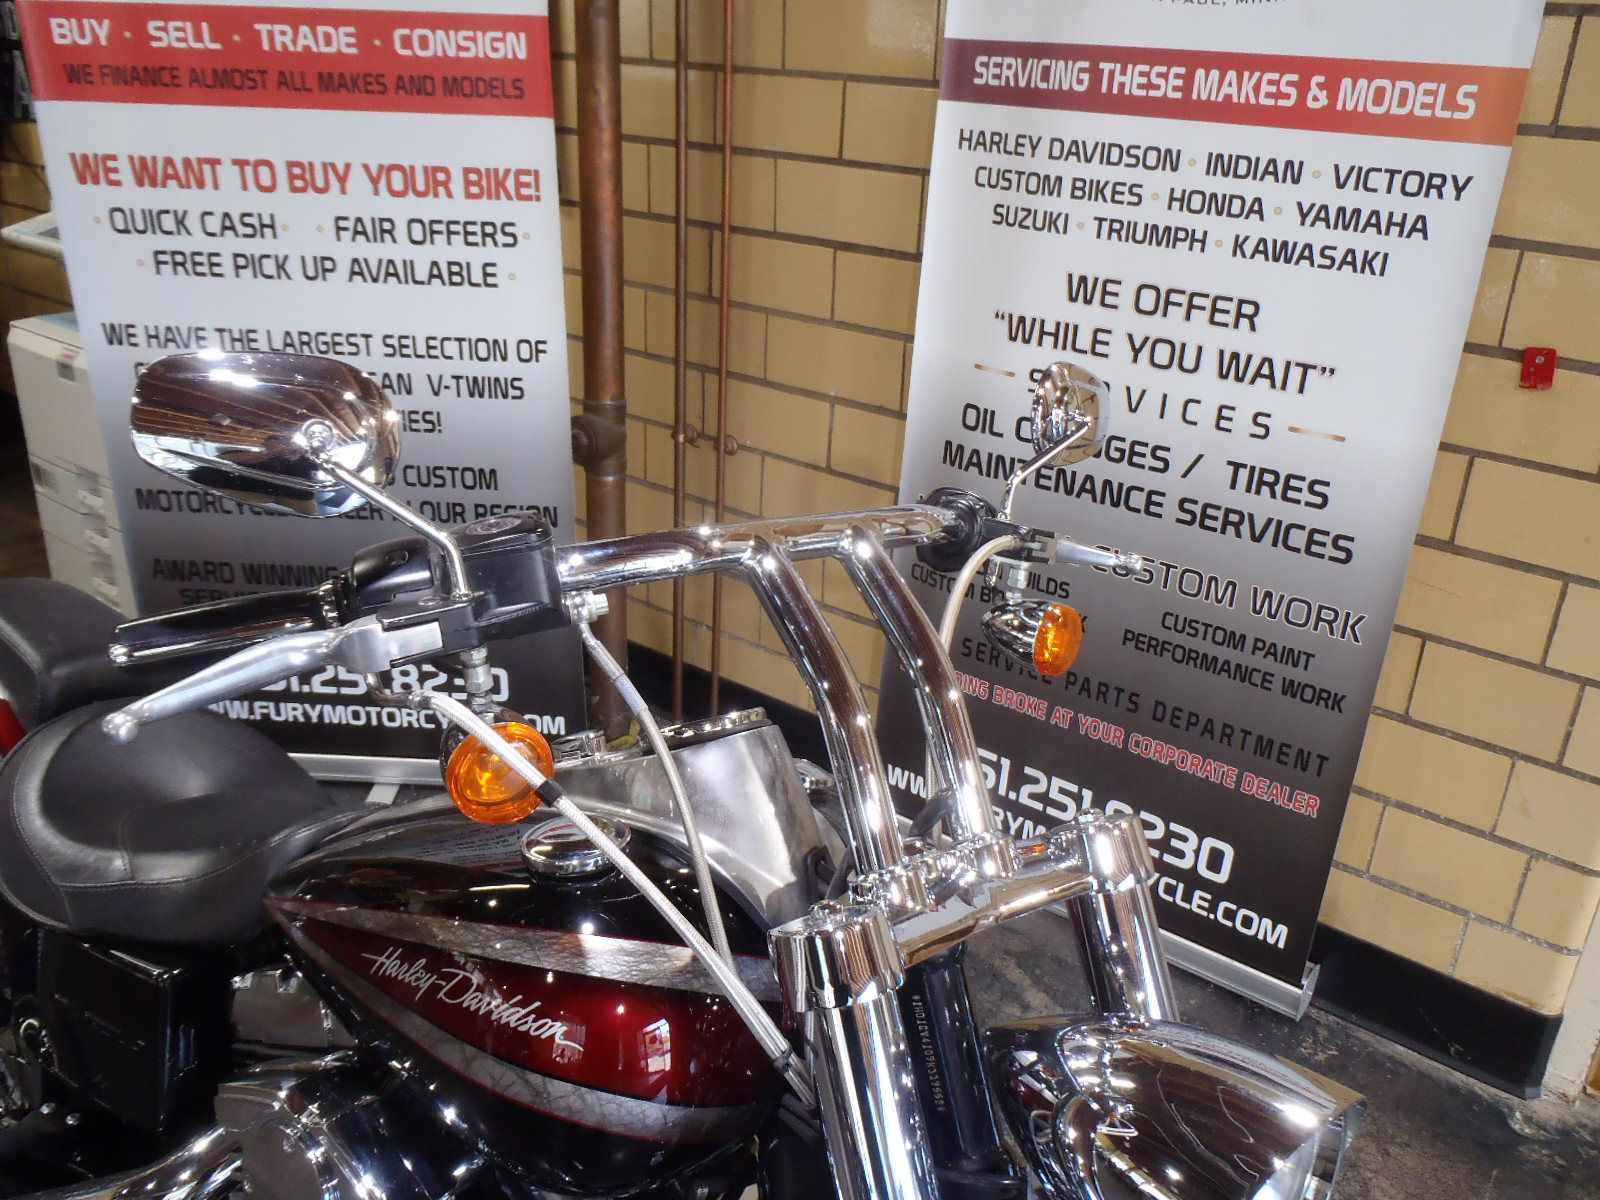 2009 Harley-Davidson Dyna Super Glide Custom in South Saint Paul, Minnesota - Photo 5